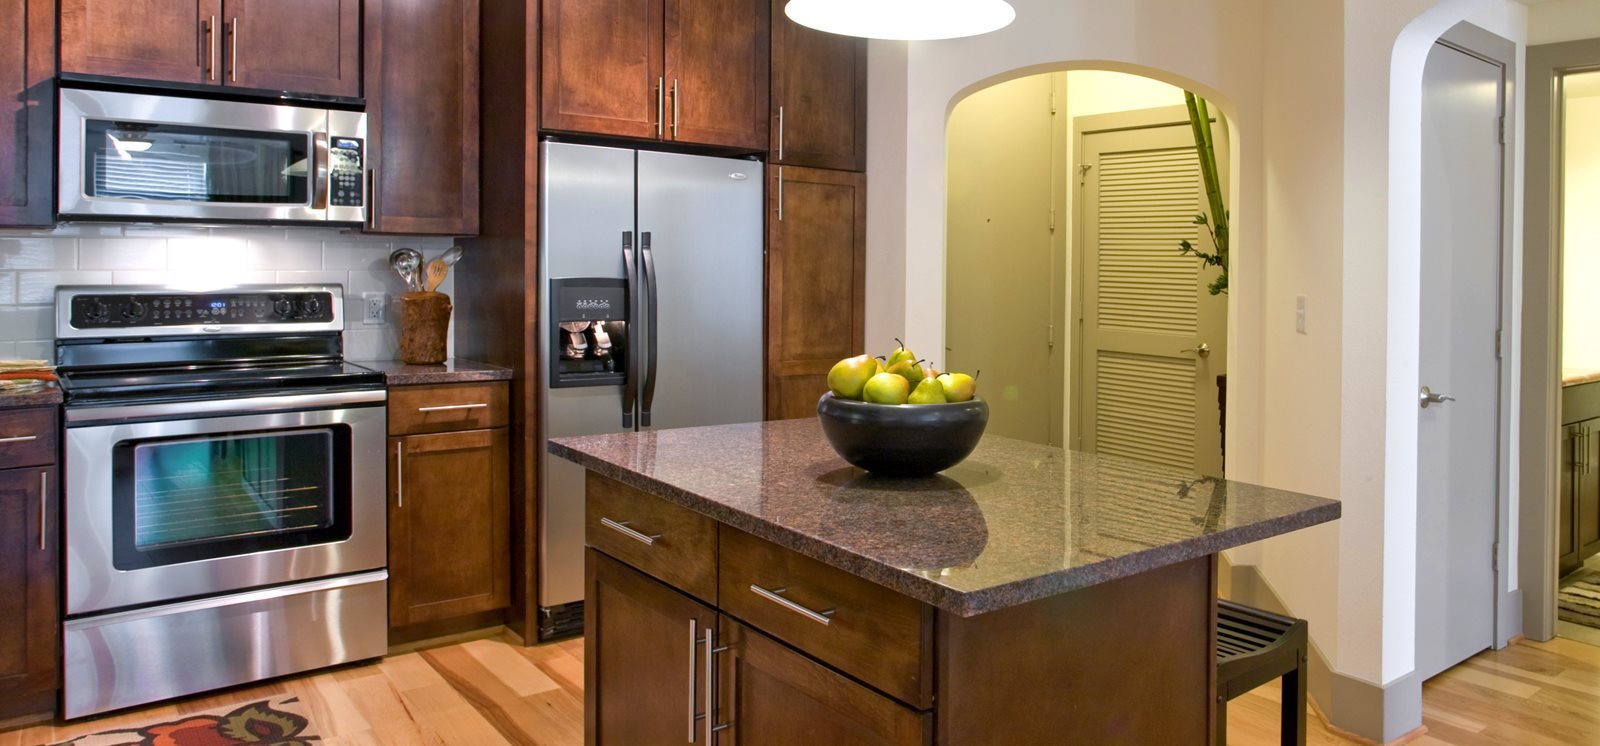 The Monterey by Windsor | West Village Apartments in Dallas | Home